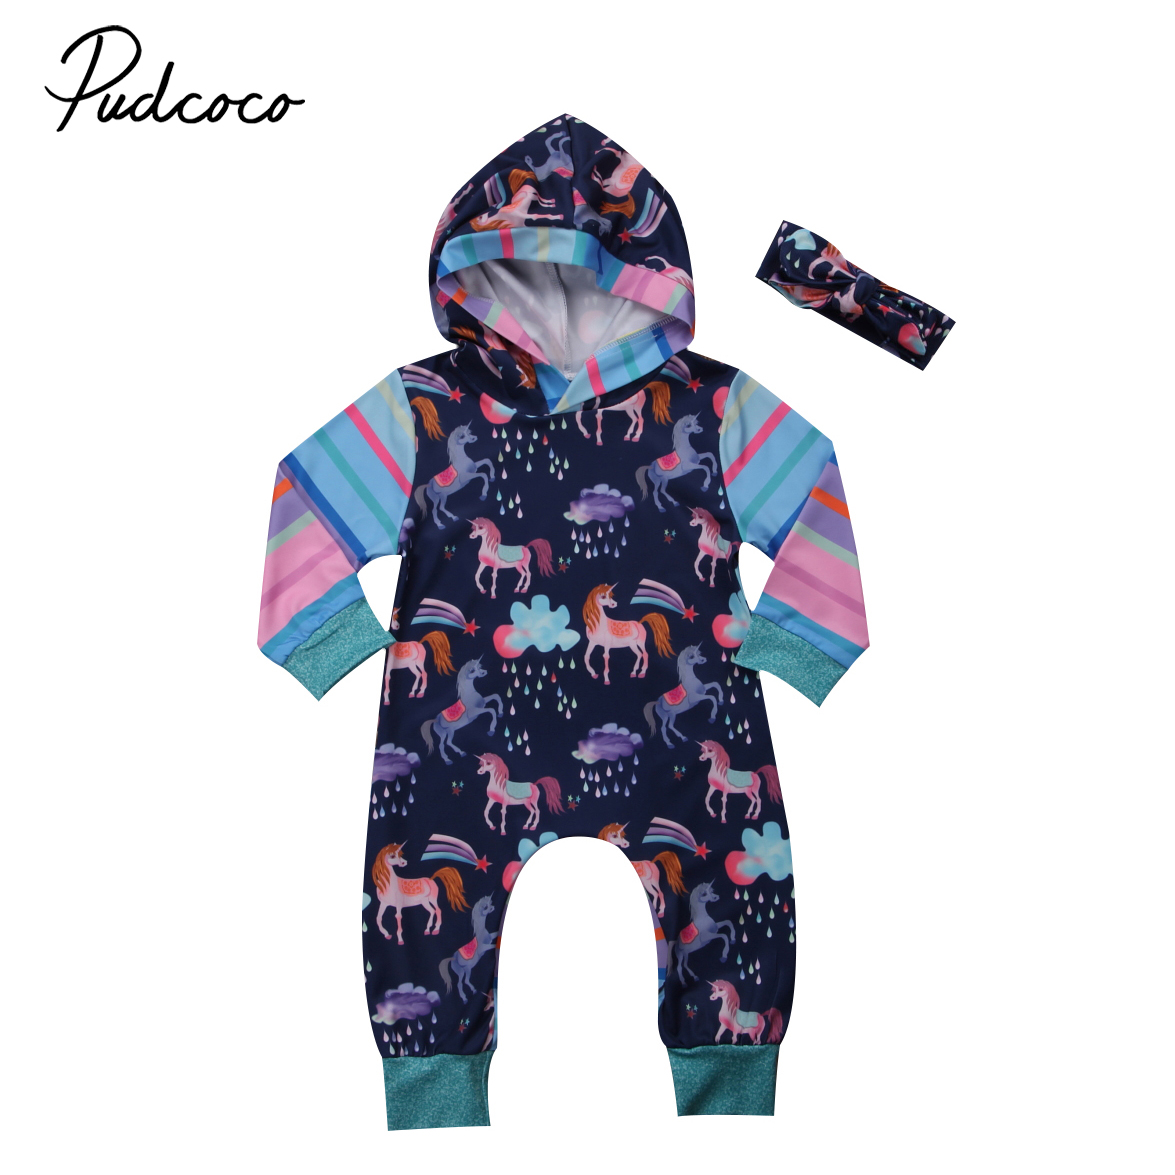 Pudcoco Aurumn Newborn Infant Baby Girl Boy Clothes Long Sleeve Horse Print Hooded Romper Playsuit Outfits Toddler Clothing